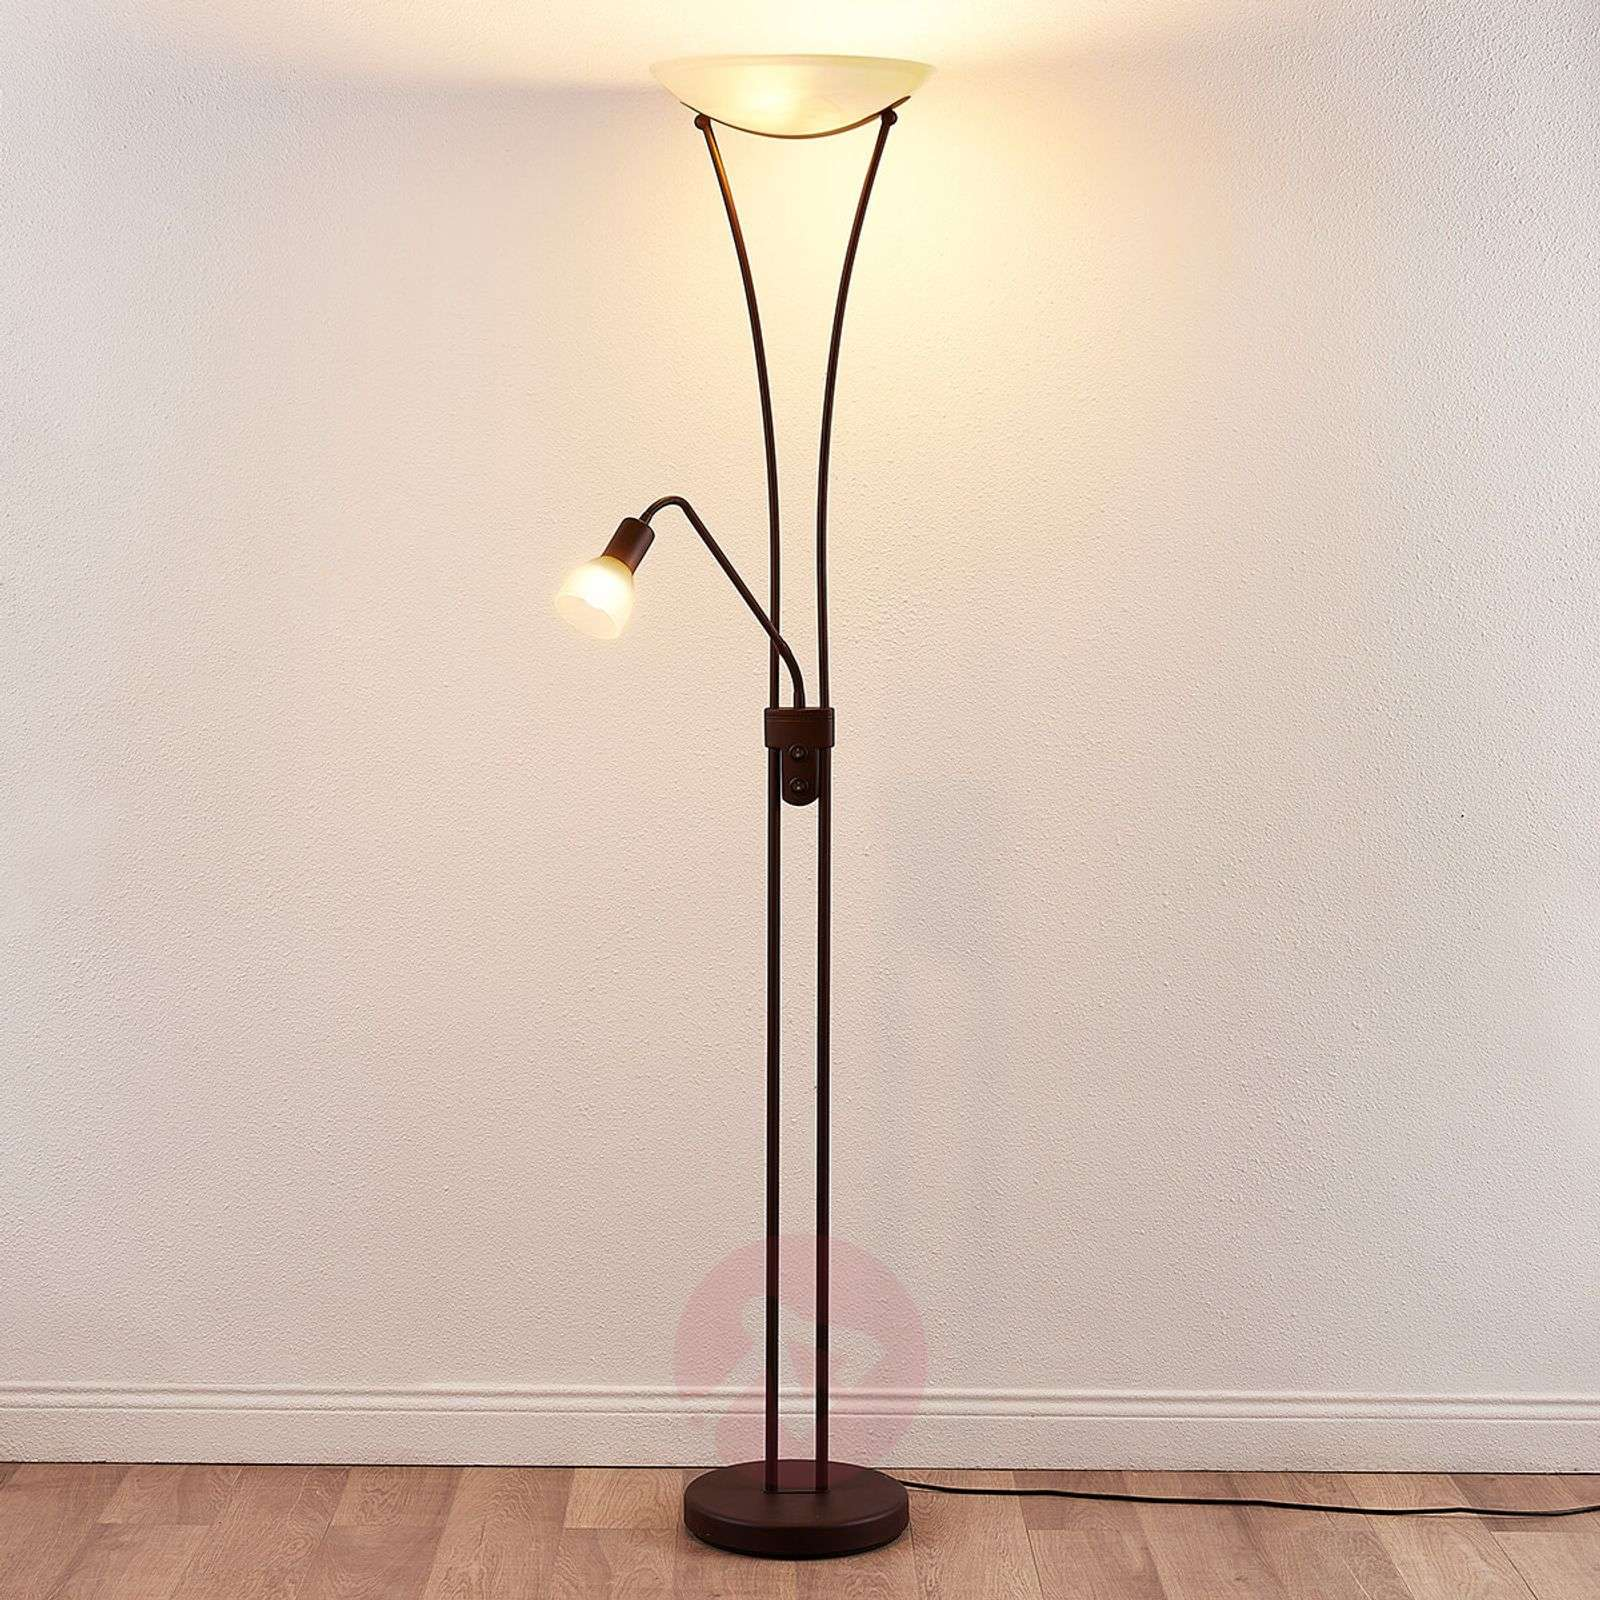 Dimmable LED uplighter Felicia in a rusty look-9621271-02